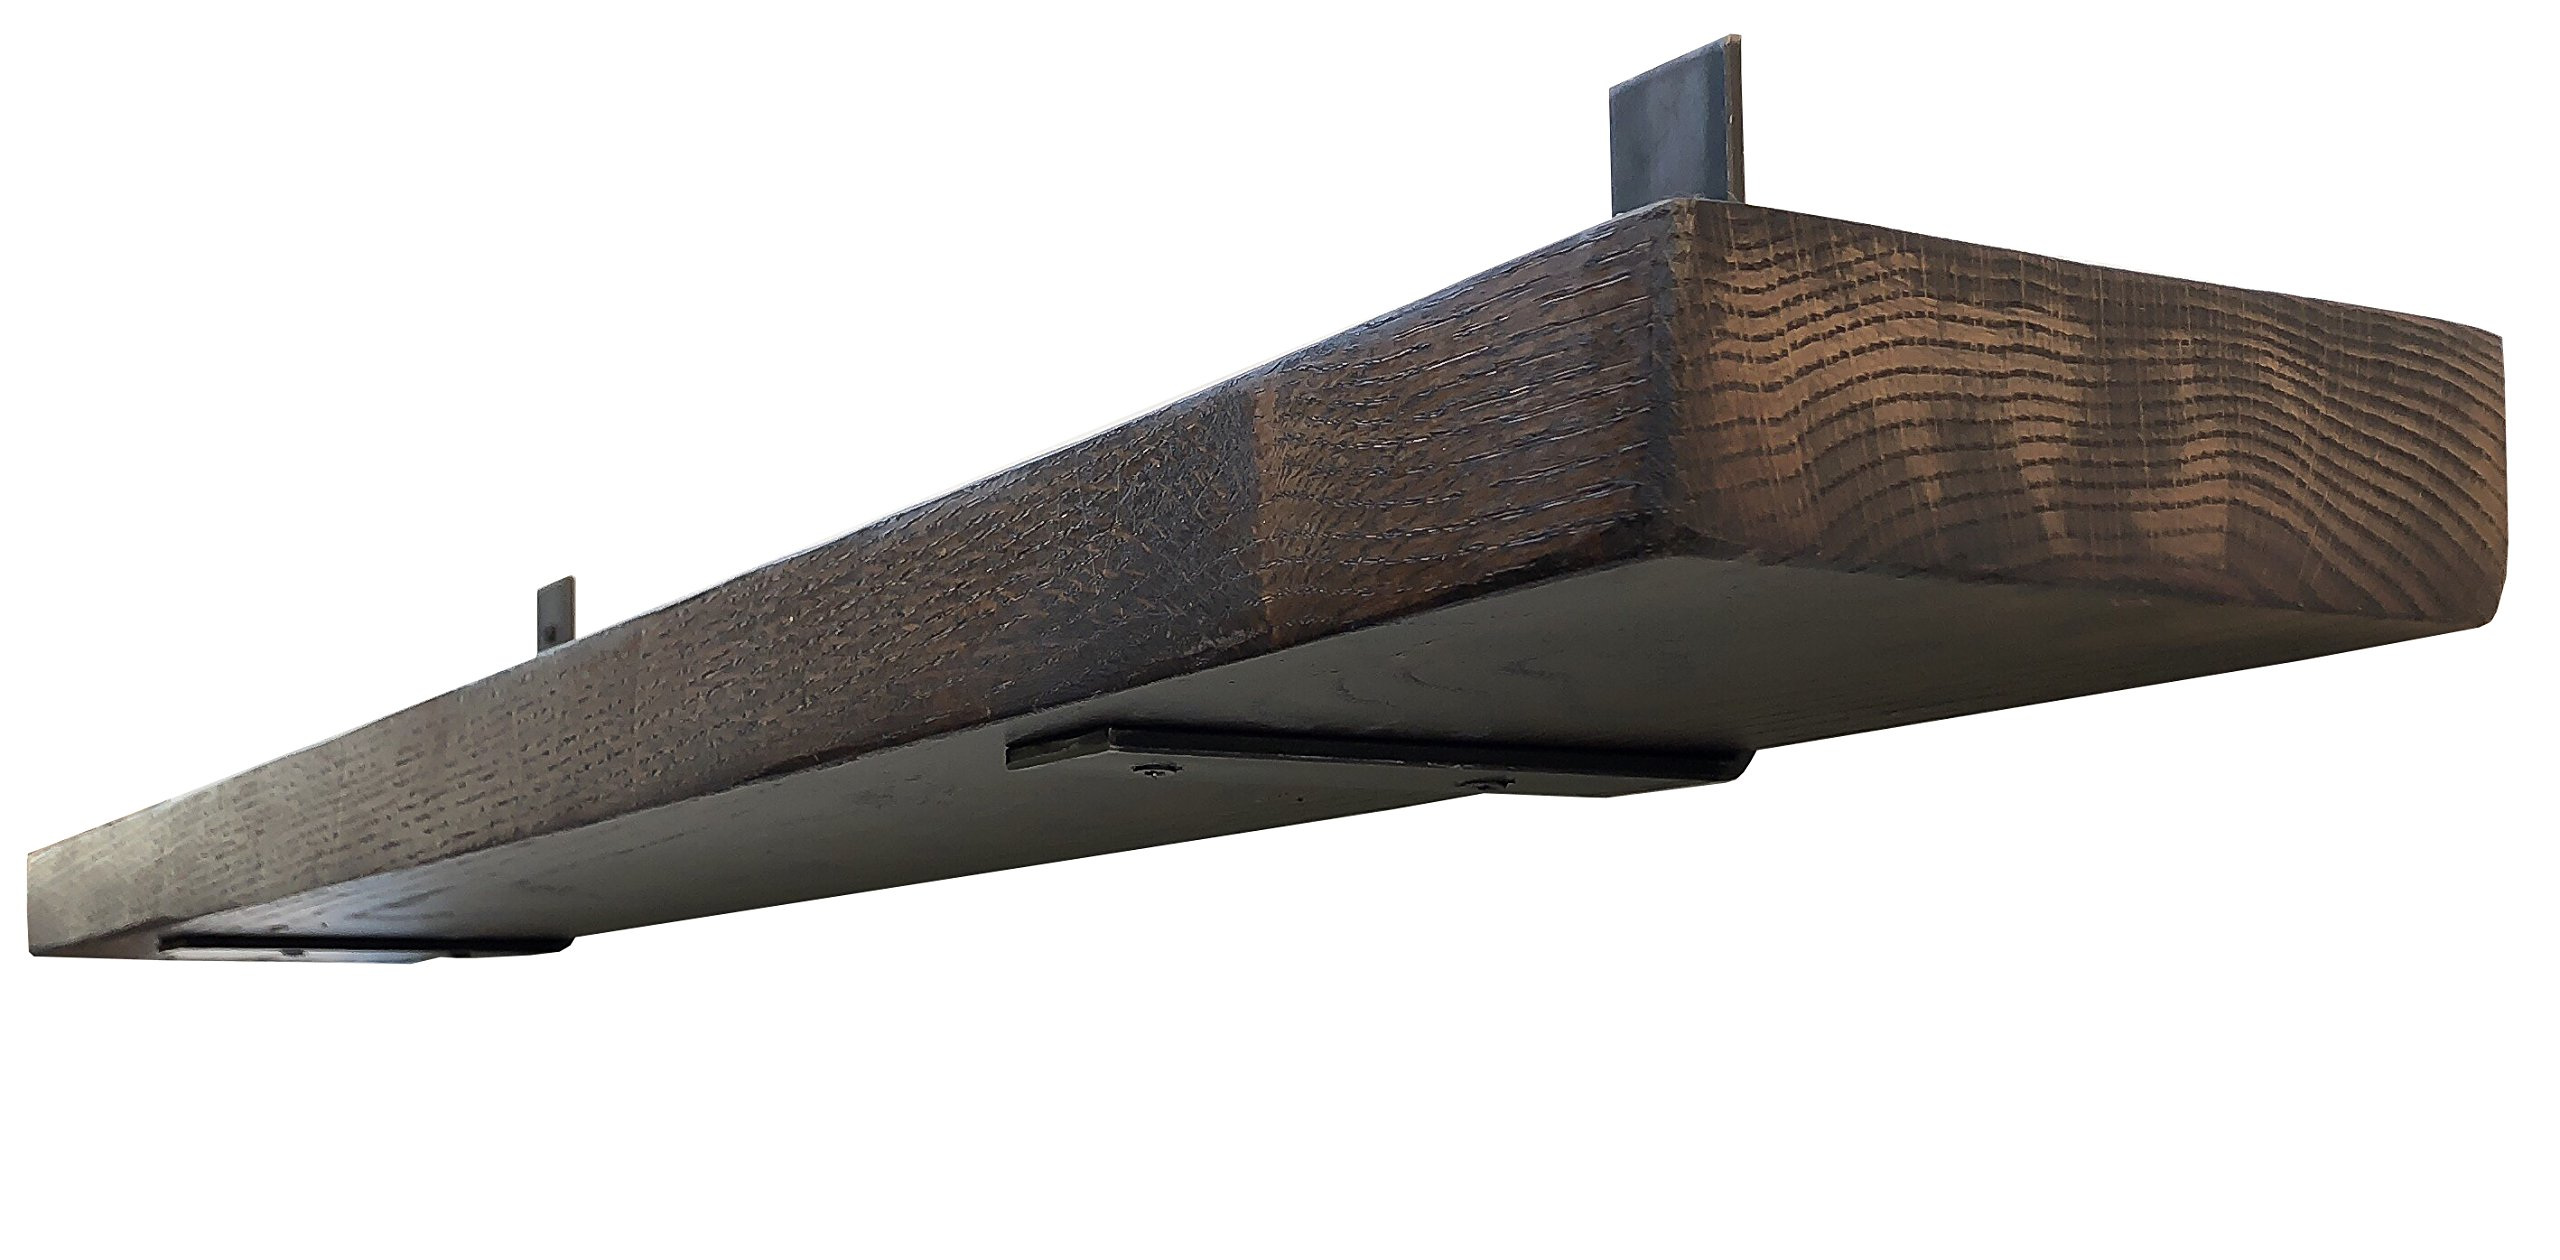 "DIY CARTEL Industrial Forged Steel Floating Shelf L/J Bracket - Heavy Duty Rustic Shelf Brackets- Raw Metal/Steel Floating Shelf Hardware Made in USA - 2 Pack (6"" x 6"" No Lip) - A USA PRODUCT YOU CAN TRUST: Our heavy duty floating shelf brackets are proudly crafted in the USA from premium quality raw metal. Industrial strength construction guarantees high durability, ensuring that our wall mounted shelf brackets can hold upwards of 60+lbs when mounted into a stud. NO HASSLE INSTALLATION WHEREVER YOU DESIRE: Whether you are a home or business owner, contractor, carpenter or DIY'er, you can easily put our metal shelf brackets up in minutes. 4 pre-made holes in each bracket allow for a quick hassle free installation. (Due to customers mounting the brackets into different types of material, screws and mounting hardware are NOT included). OPTIMAL DESIGN SUITS ANY STYLE: Our forged steel shelf brackets will compliment any décor whether it's farmhouse, rustic, vintage, industrial or steampunk! The minimalist, industrial, chic, modern yet rustic design, make them the perfect addition to your home, kitchen, garage, business and office. You can use and re-use our brackets anywhere you want! - wall-shelves, living-room-furniture, living-room - 71xXJpb6jcL -"